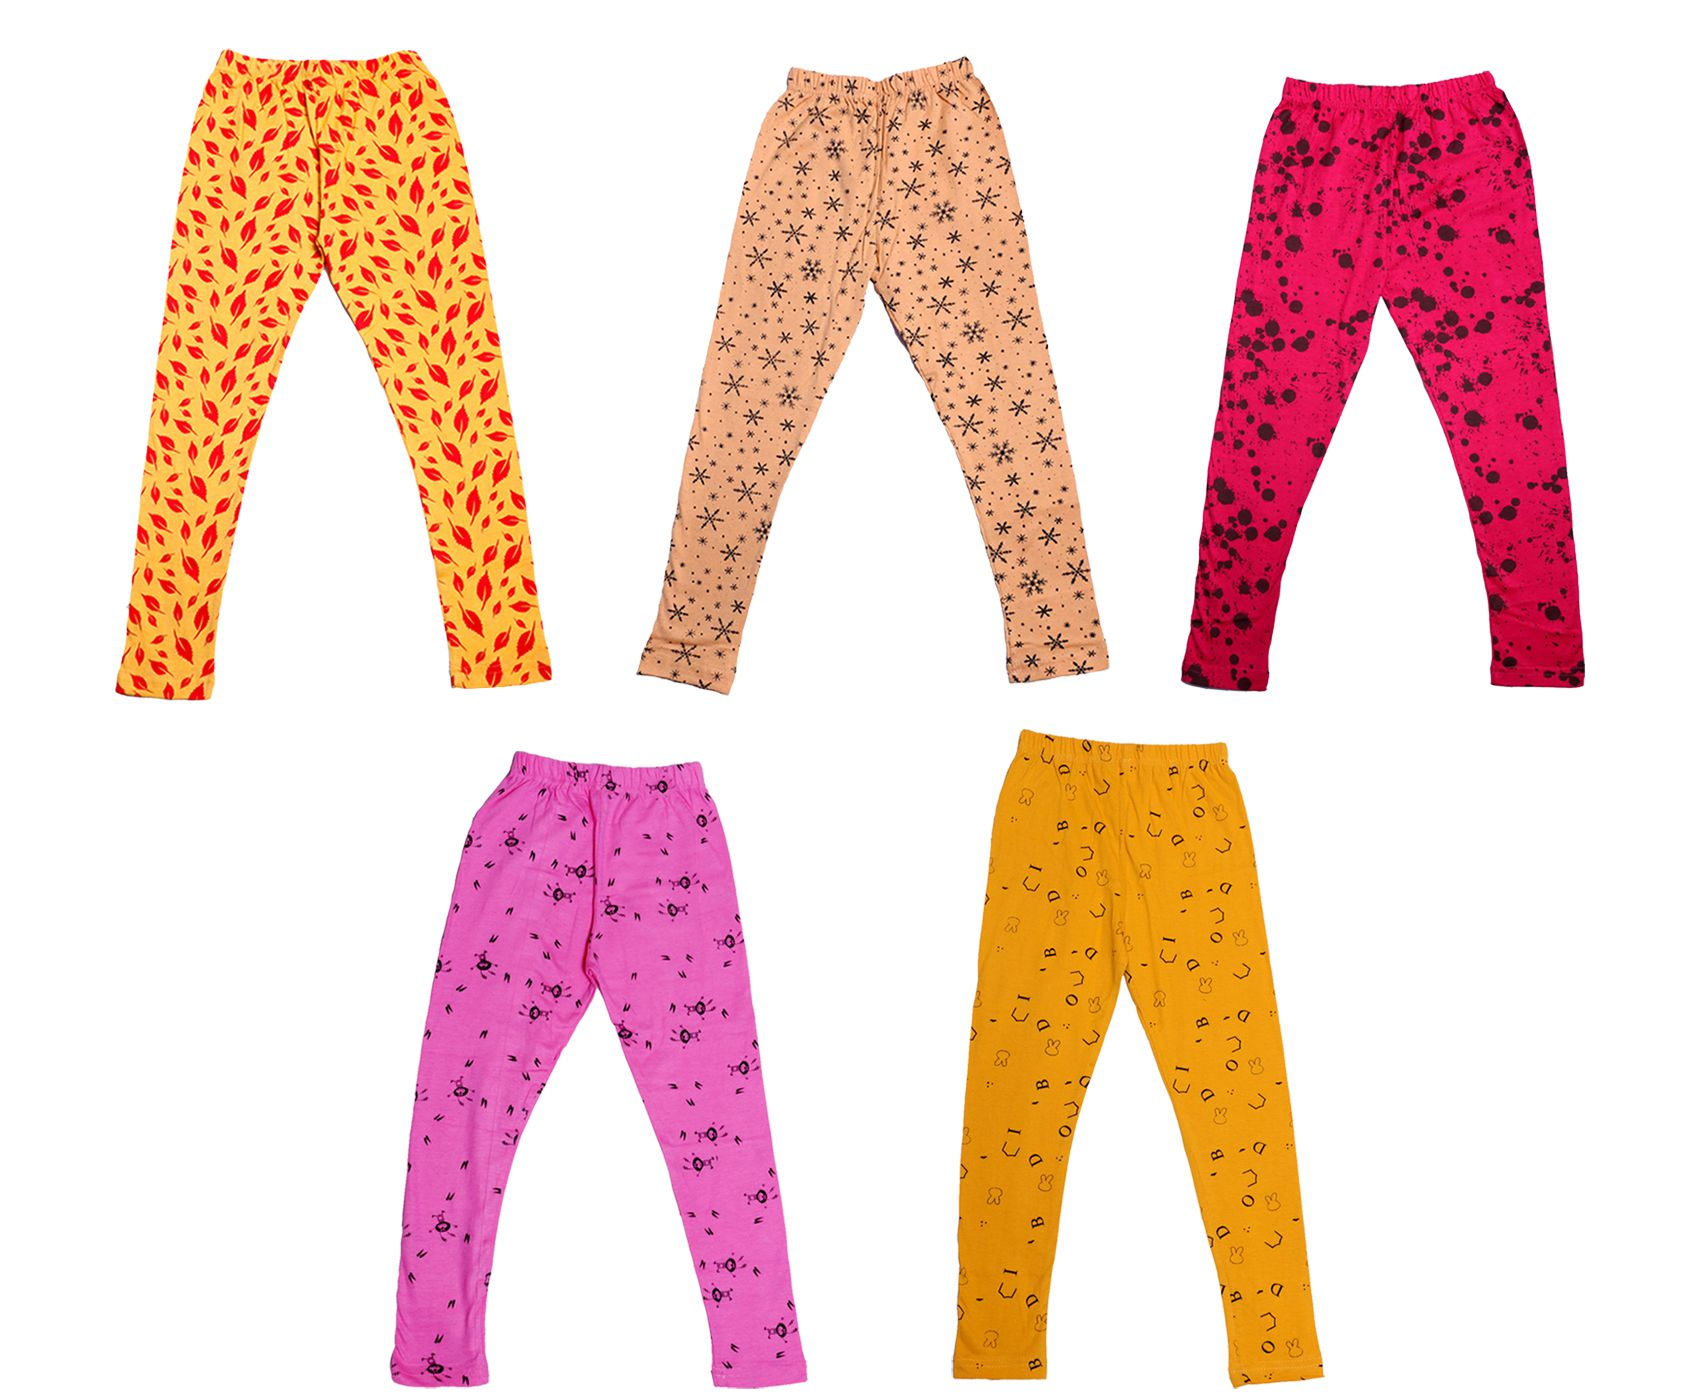 Pack Of 4 indiWeaves Girls Super Soft and Stylish Cotton Printed Legging